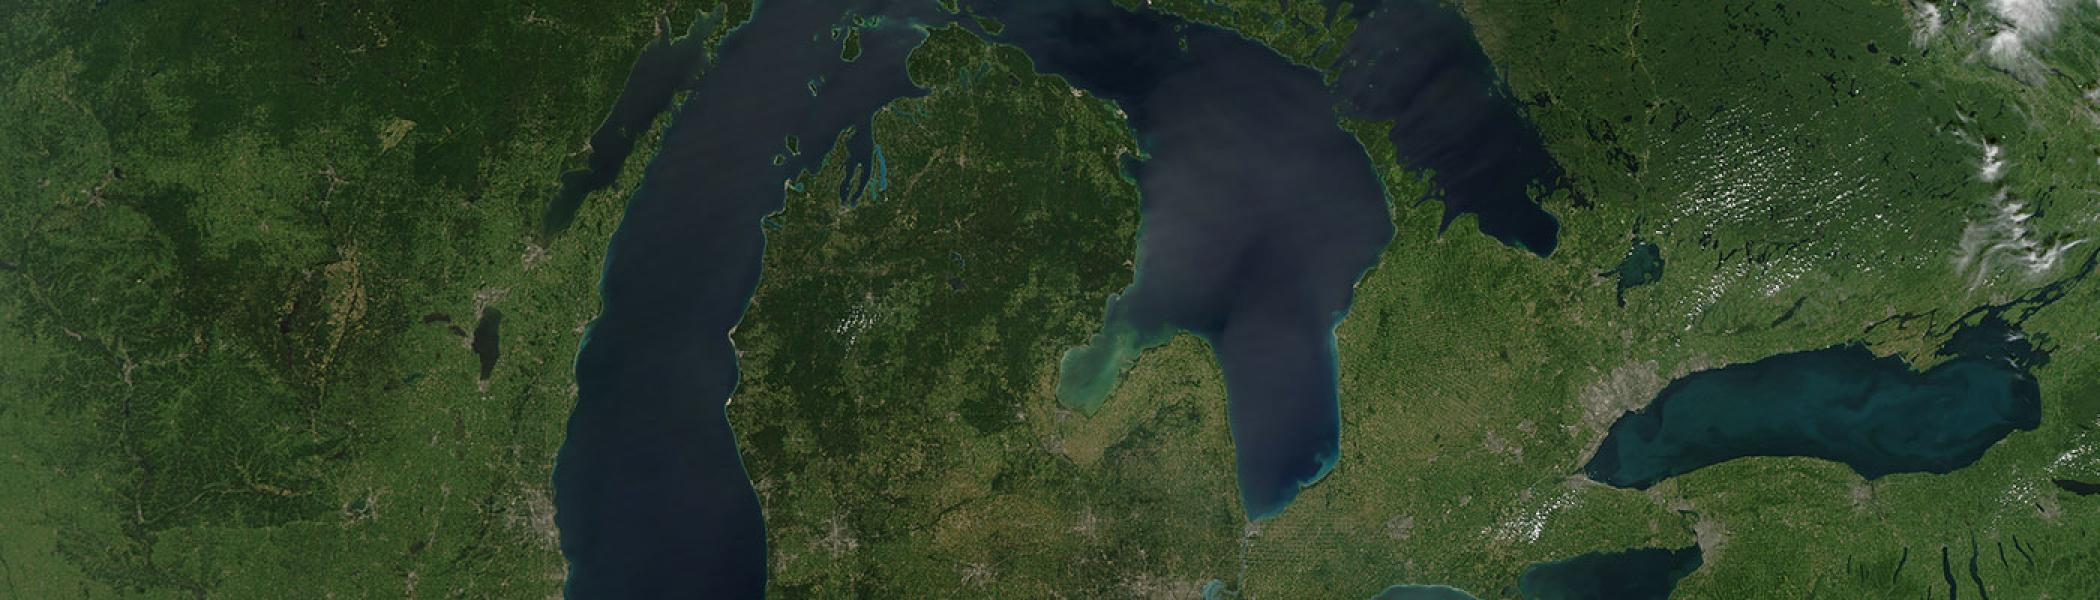 Aerial picture of the great lakes and surrounding forest